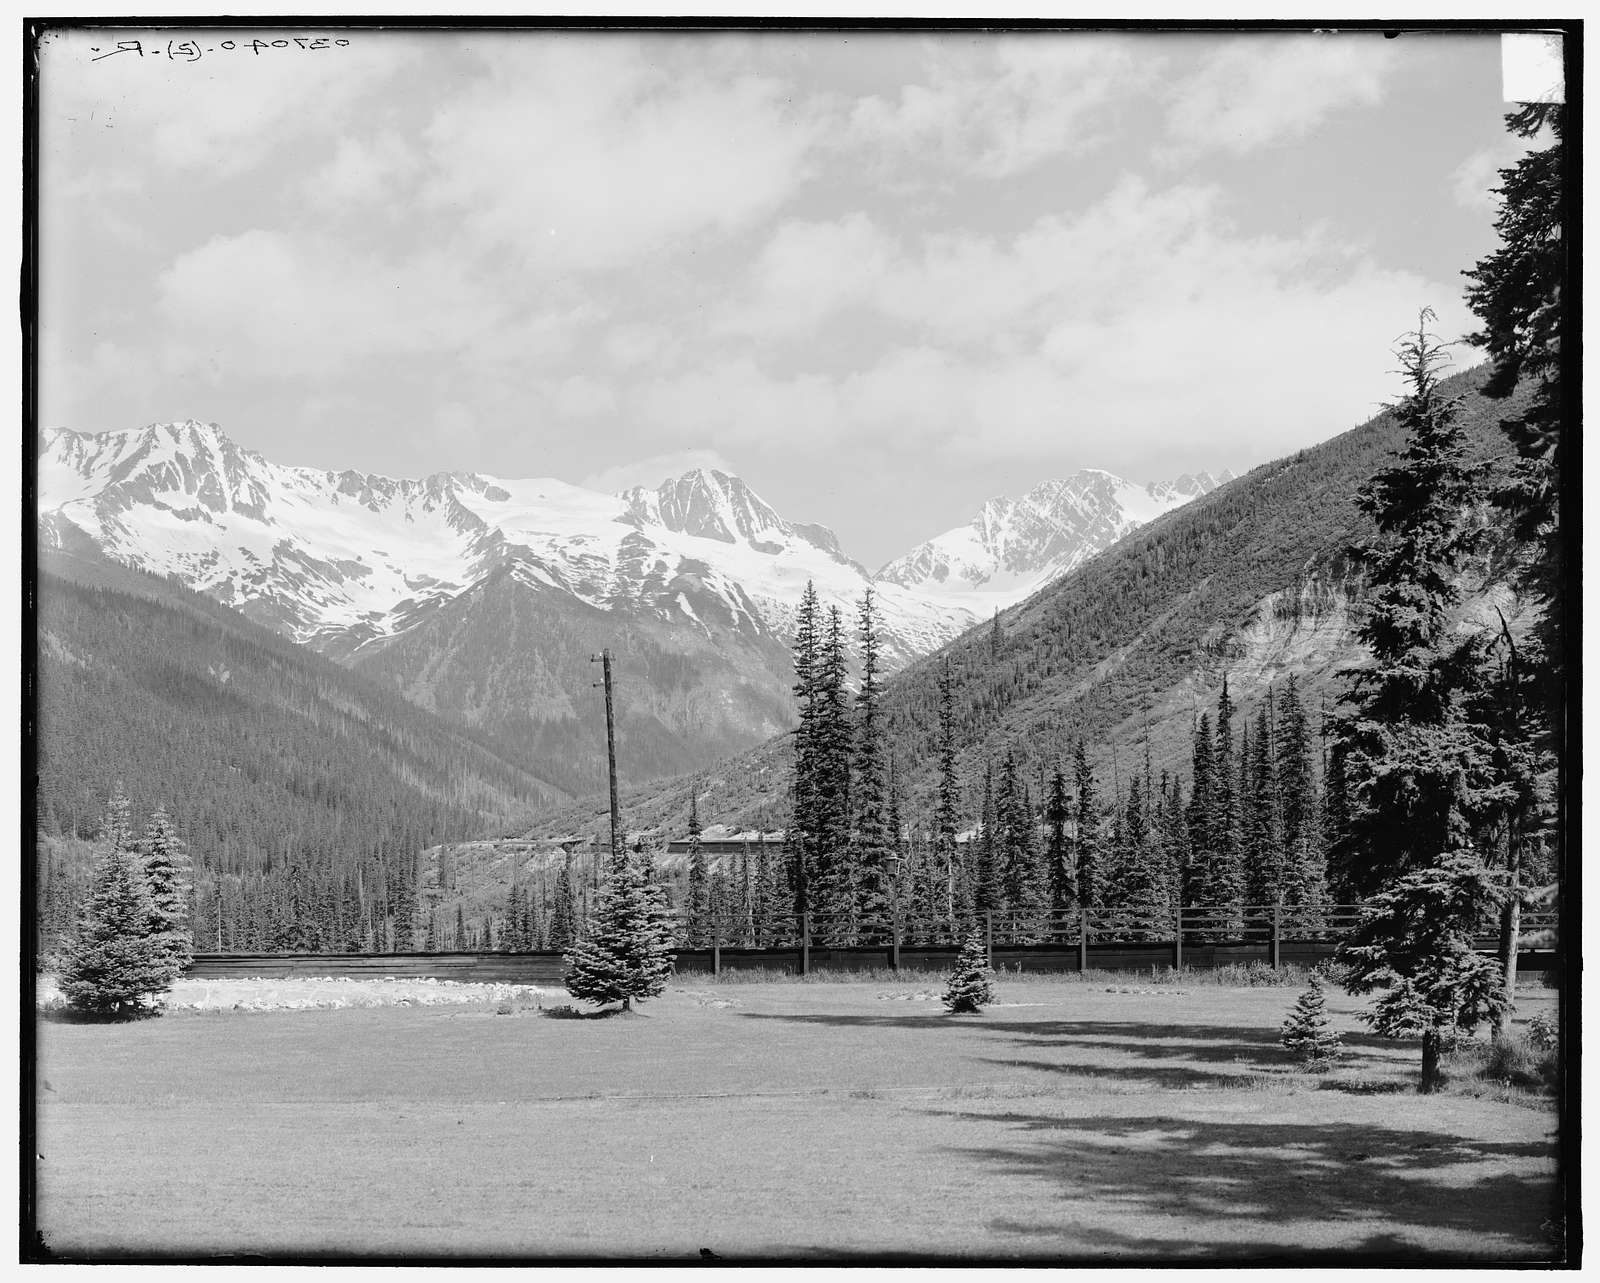 Hermit Range from Glacier House, Selkirk Mountains, British Columbia, Canada